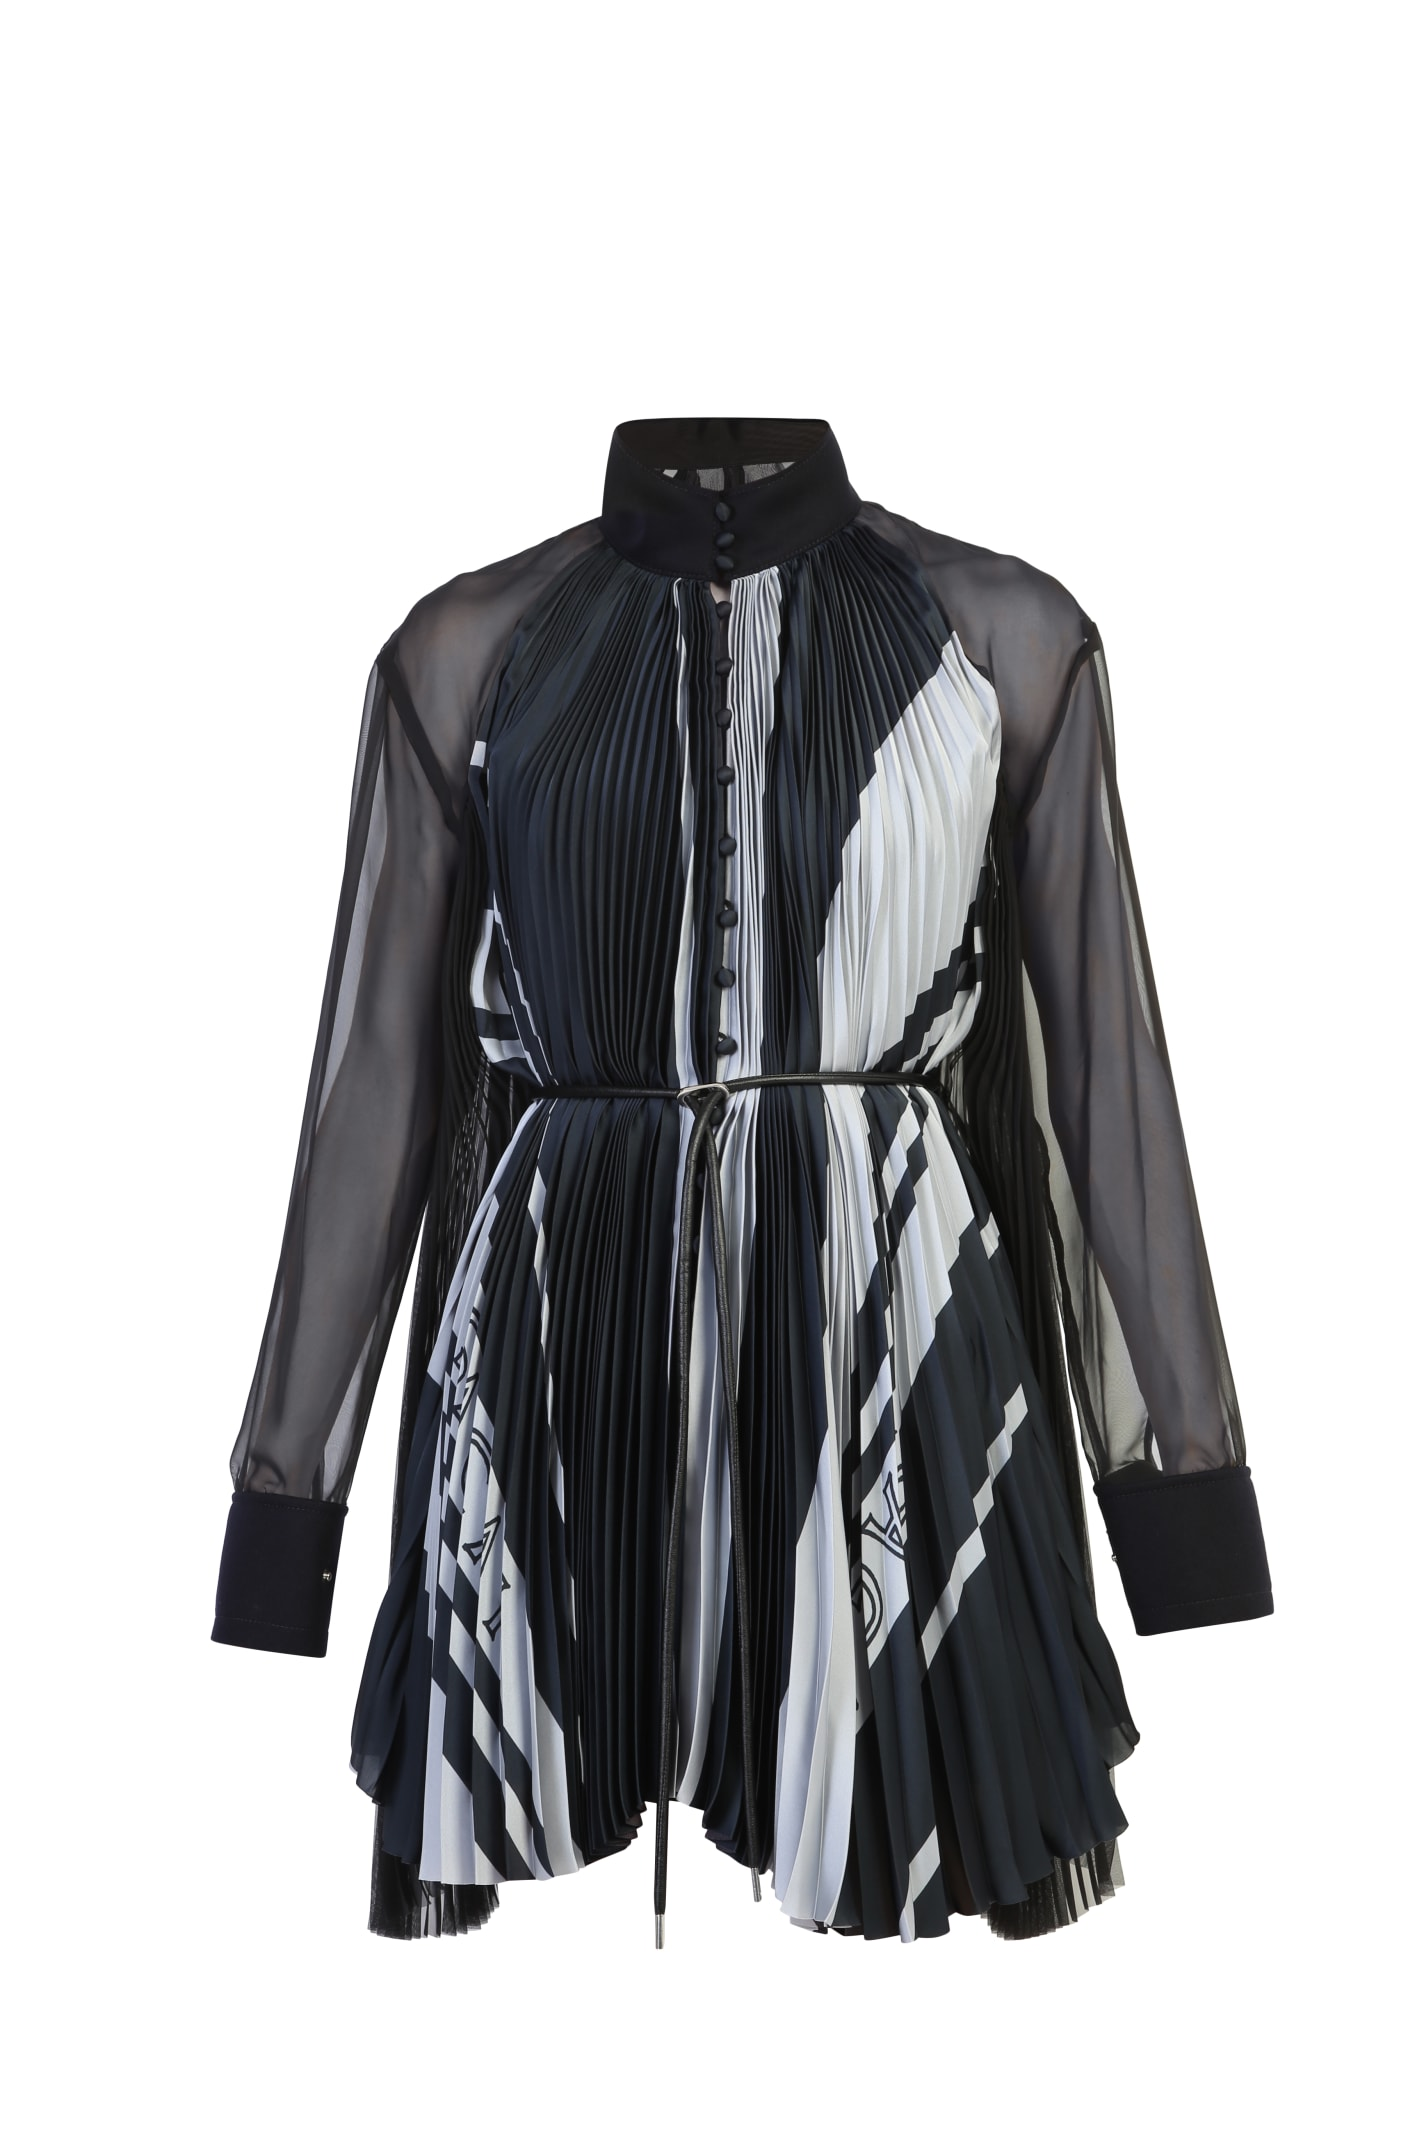 Sacai Tops PLEATED BLOUSE